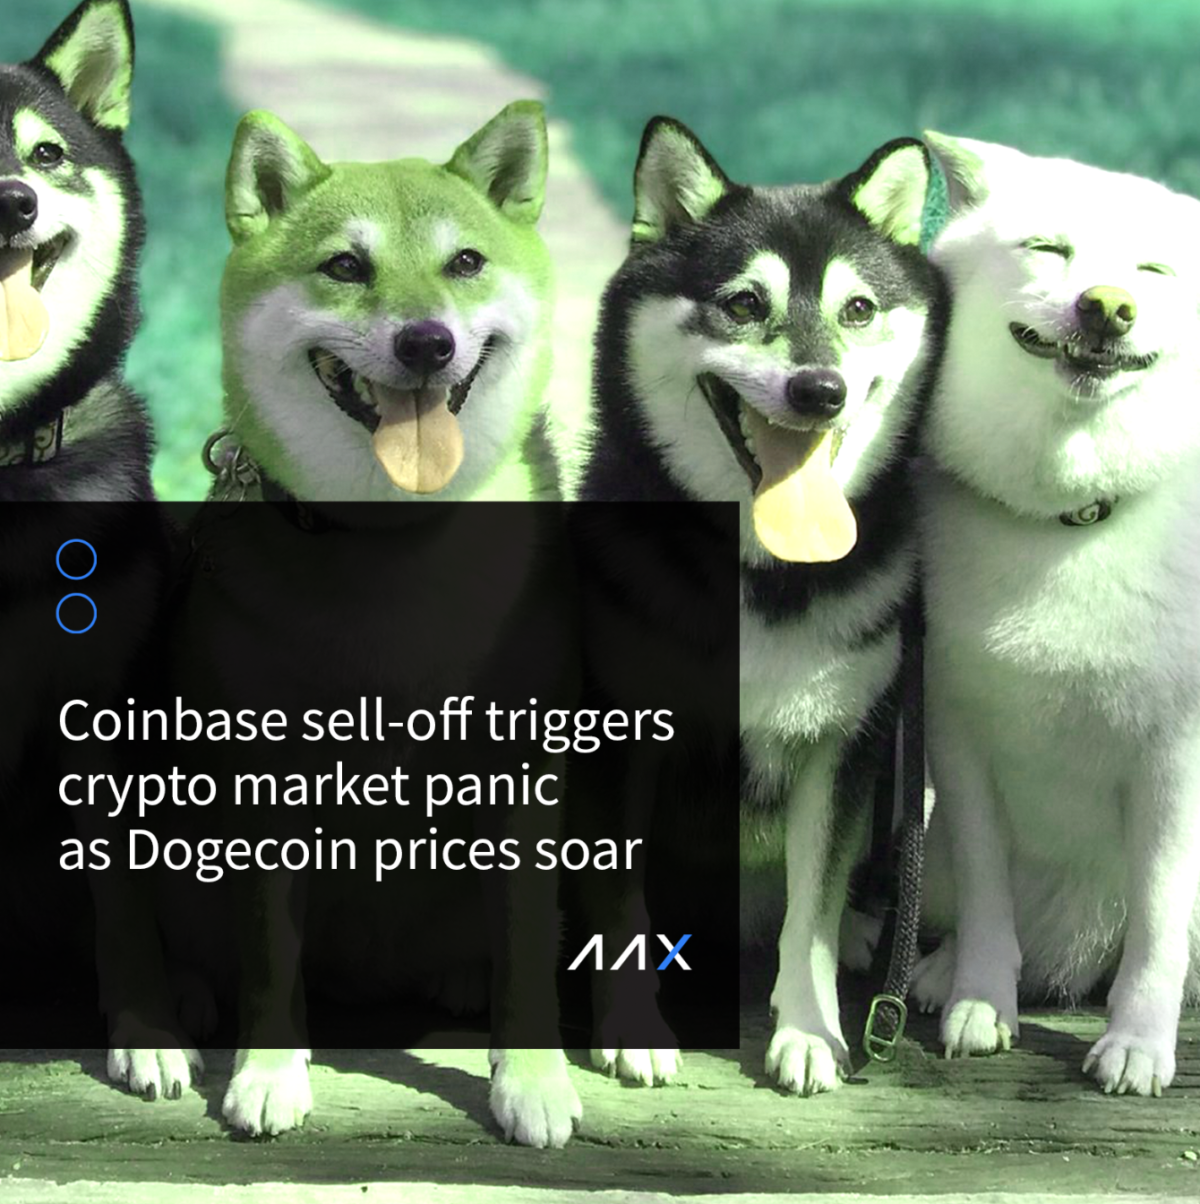 Coinbase sell-off triggers crypto market panic as Dogecoin prices soar